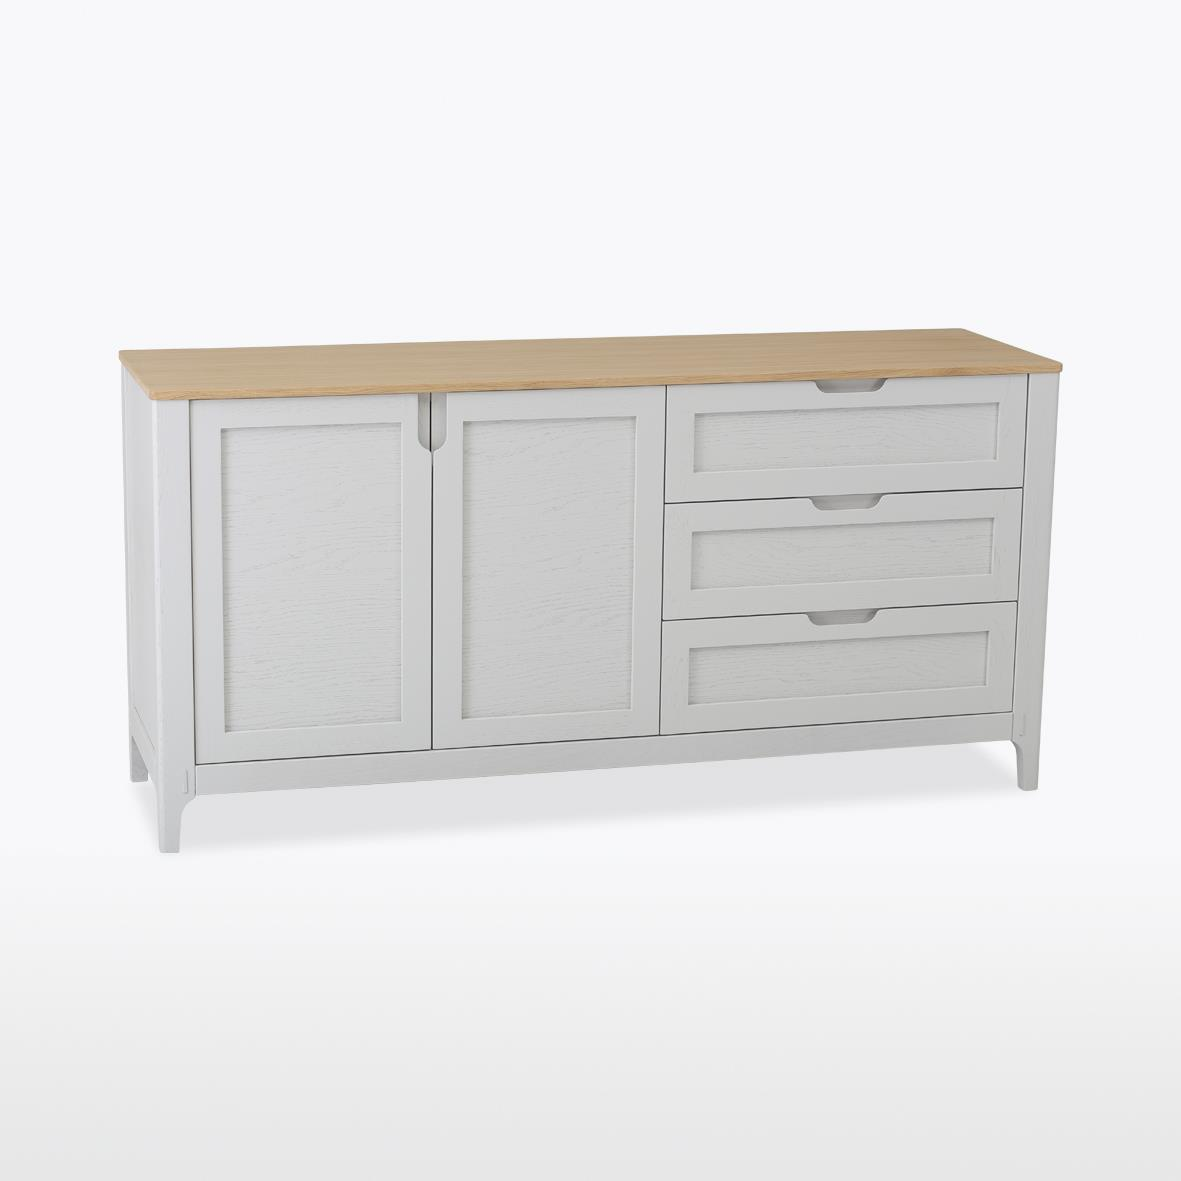 MIA - Large Sideboard 502